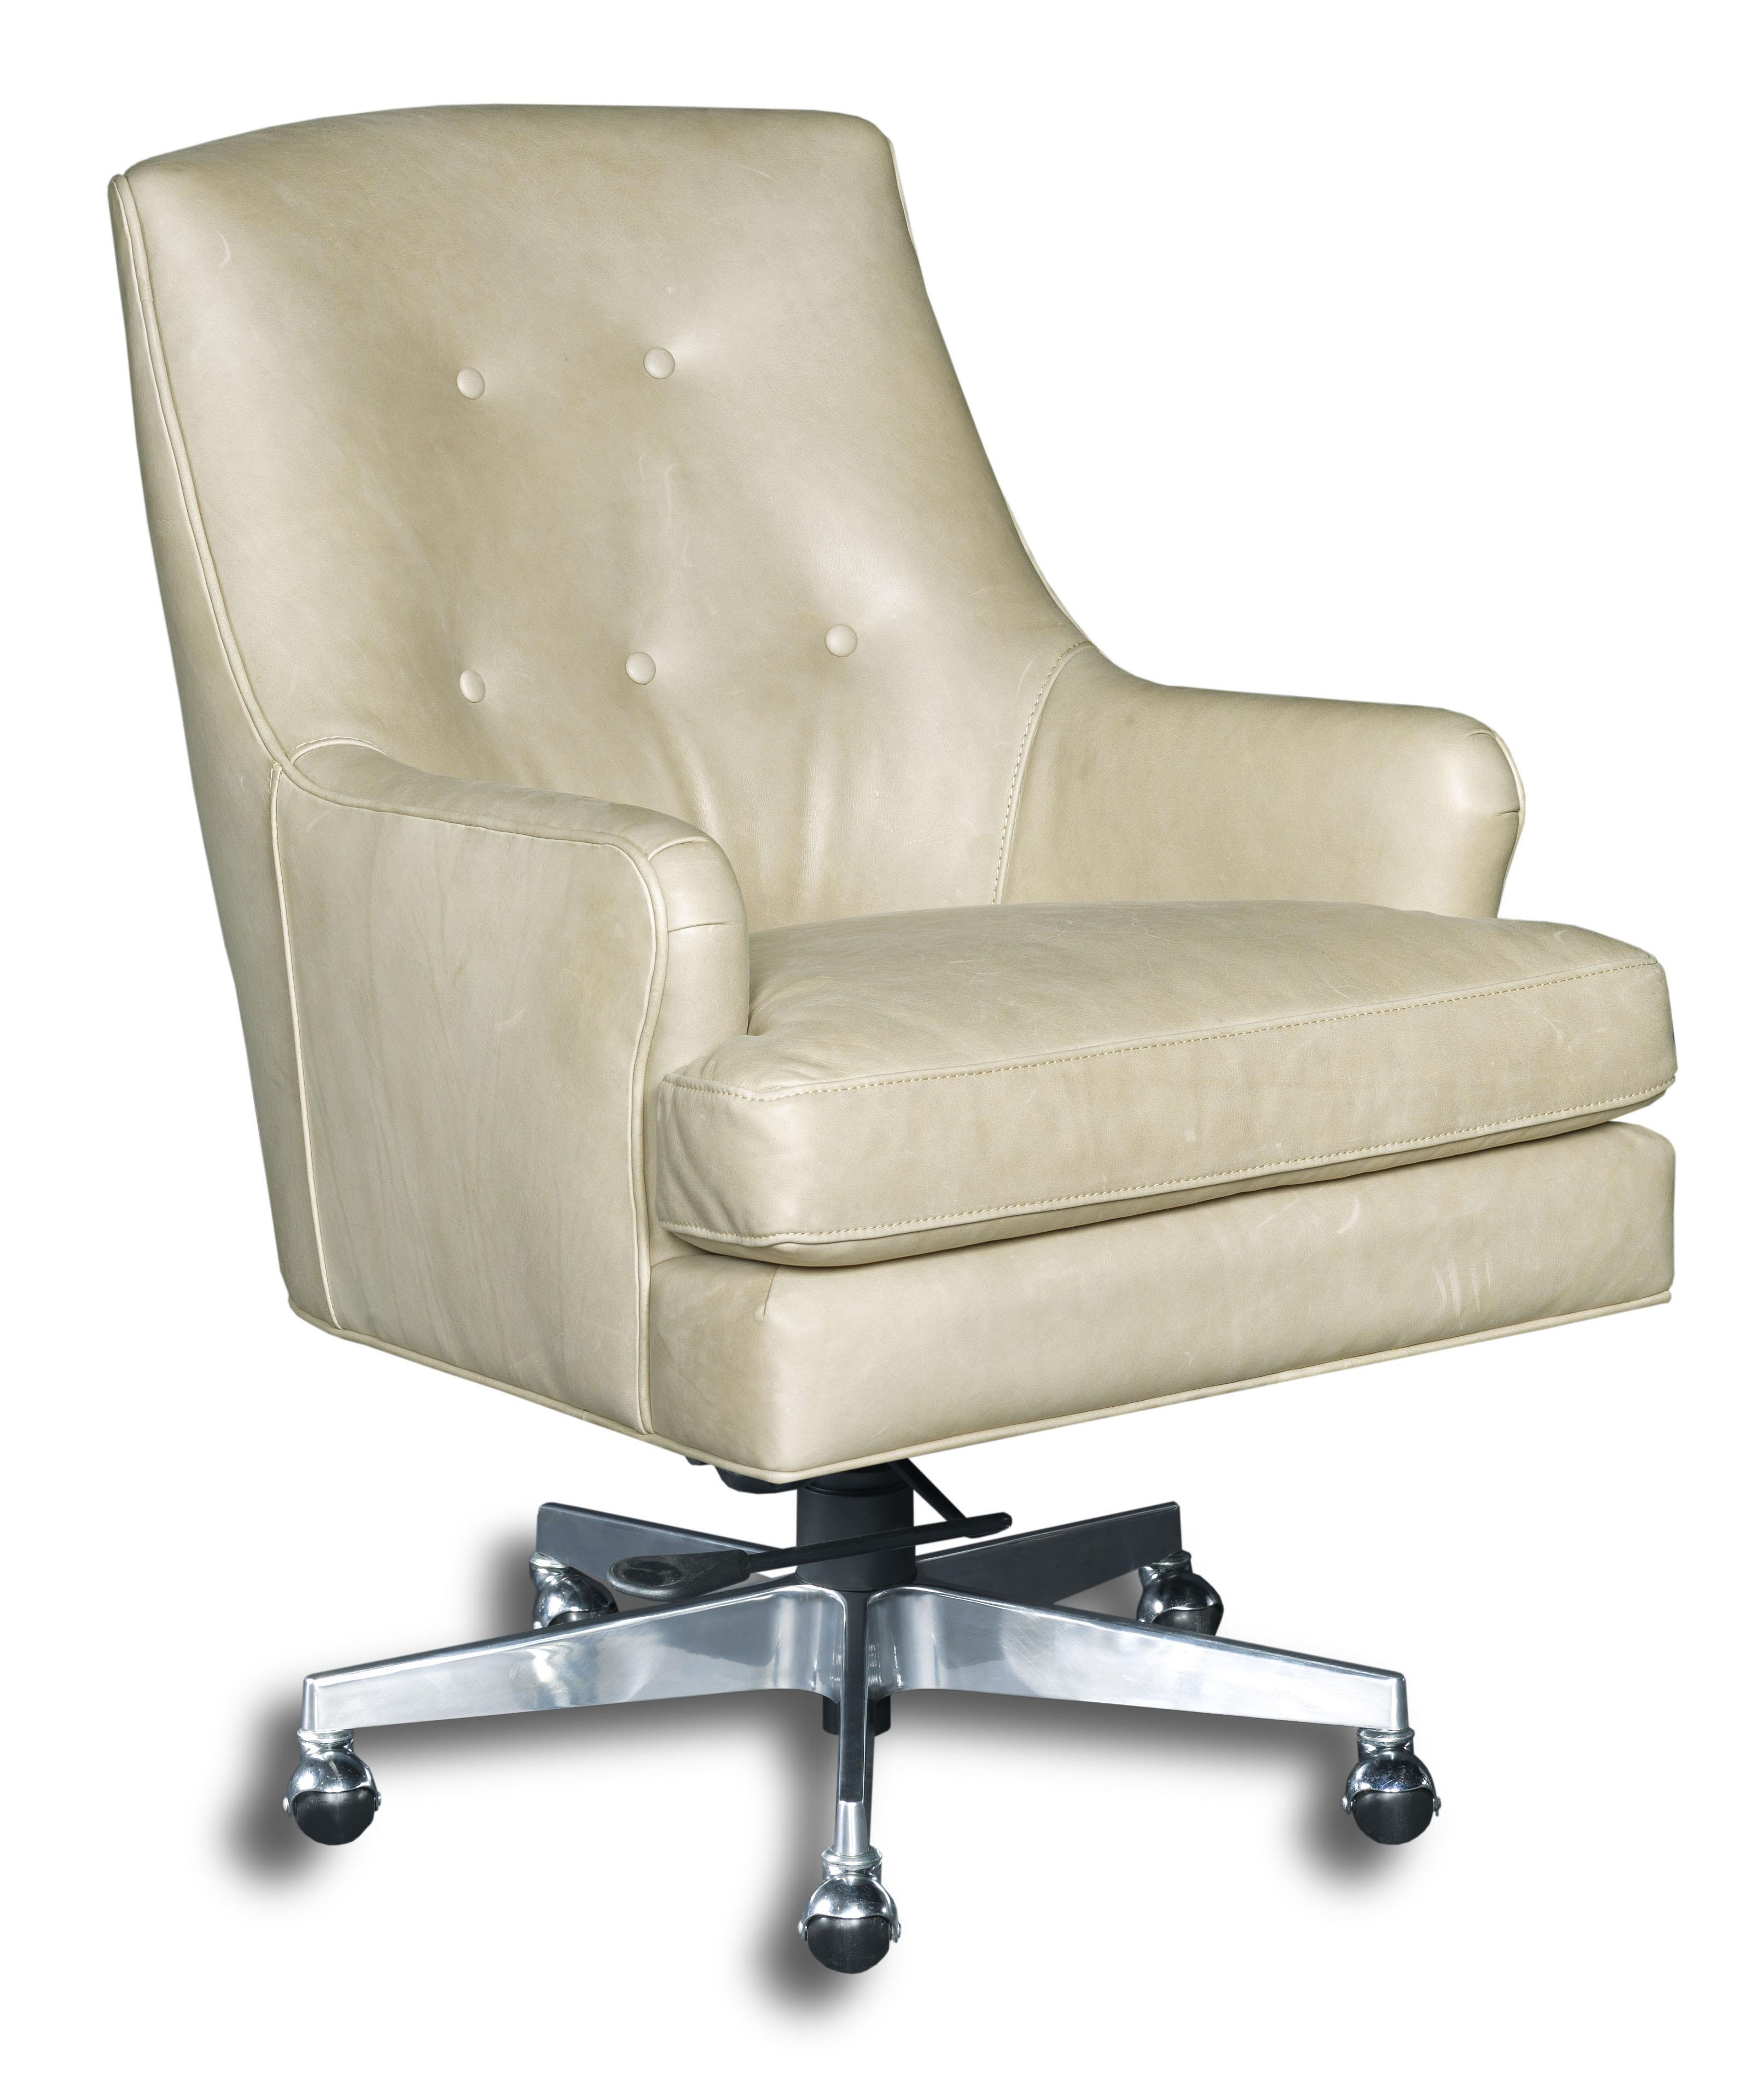 Hooker furniture executive seating ec452 ch 083 - Home office furniture components ...